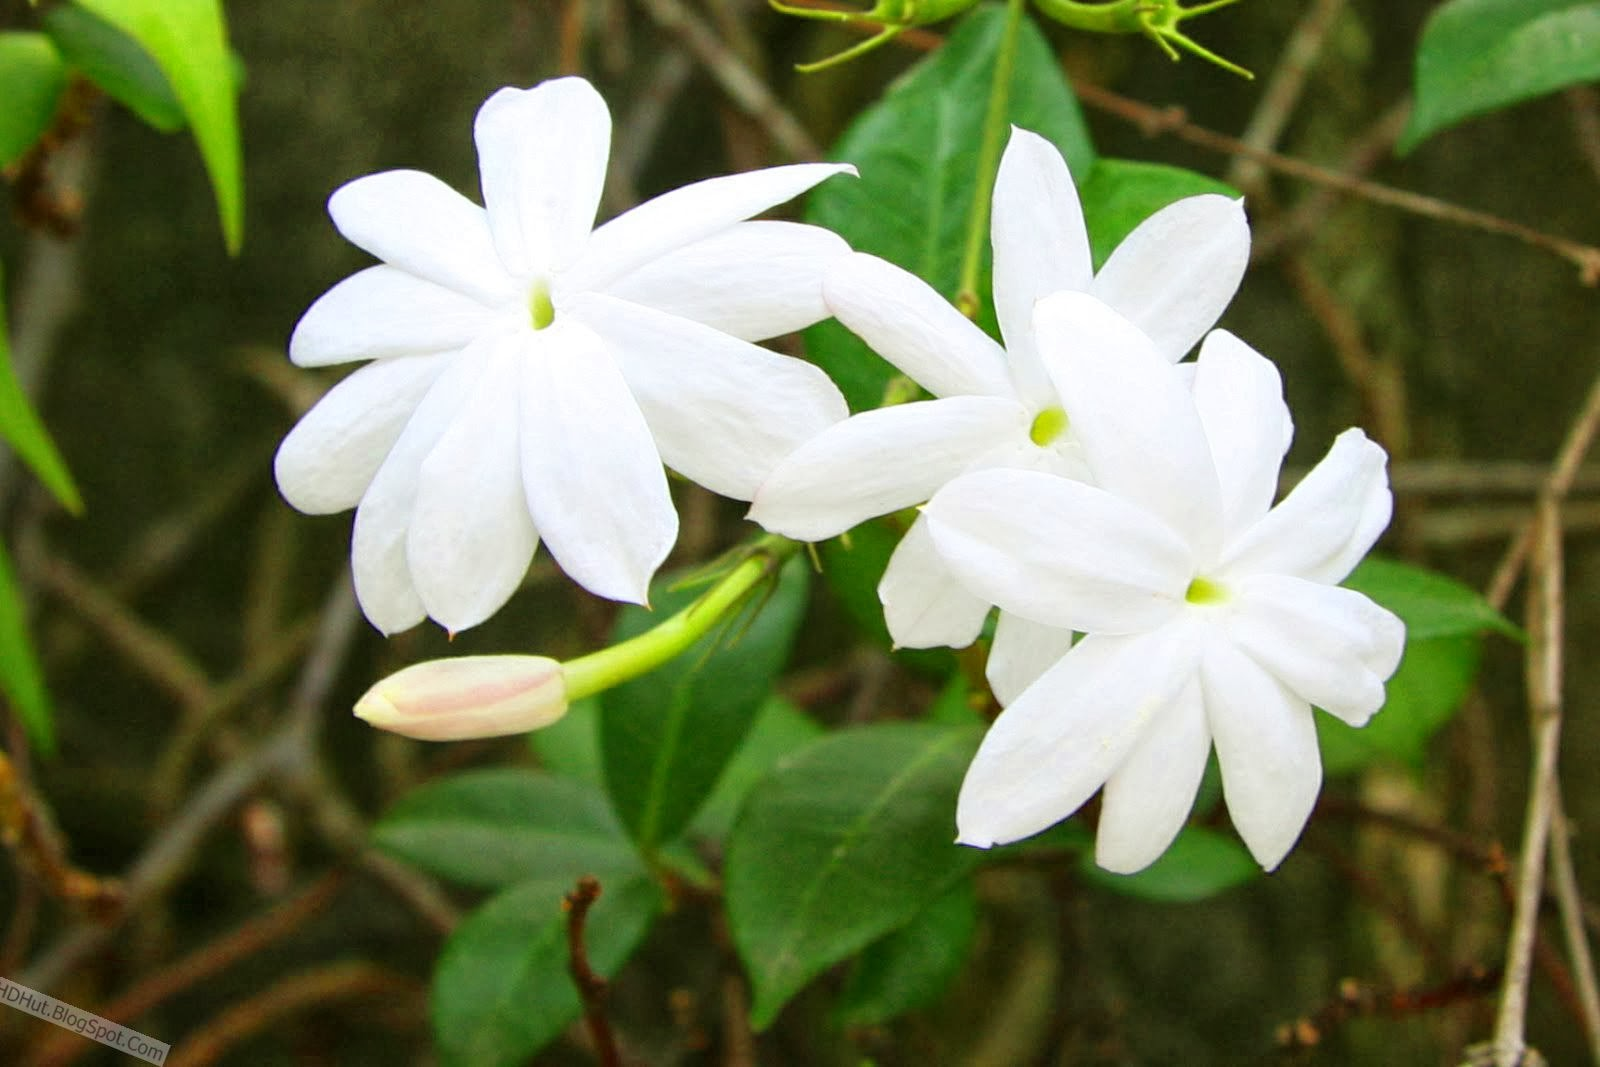 Oneimiratespot top 20 jasmine flower wallpapers in hd the fruits of jasmines are berries that turn black when ripe here we have some of this type wallpapers in hd hope youll like it izmirmasajfo